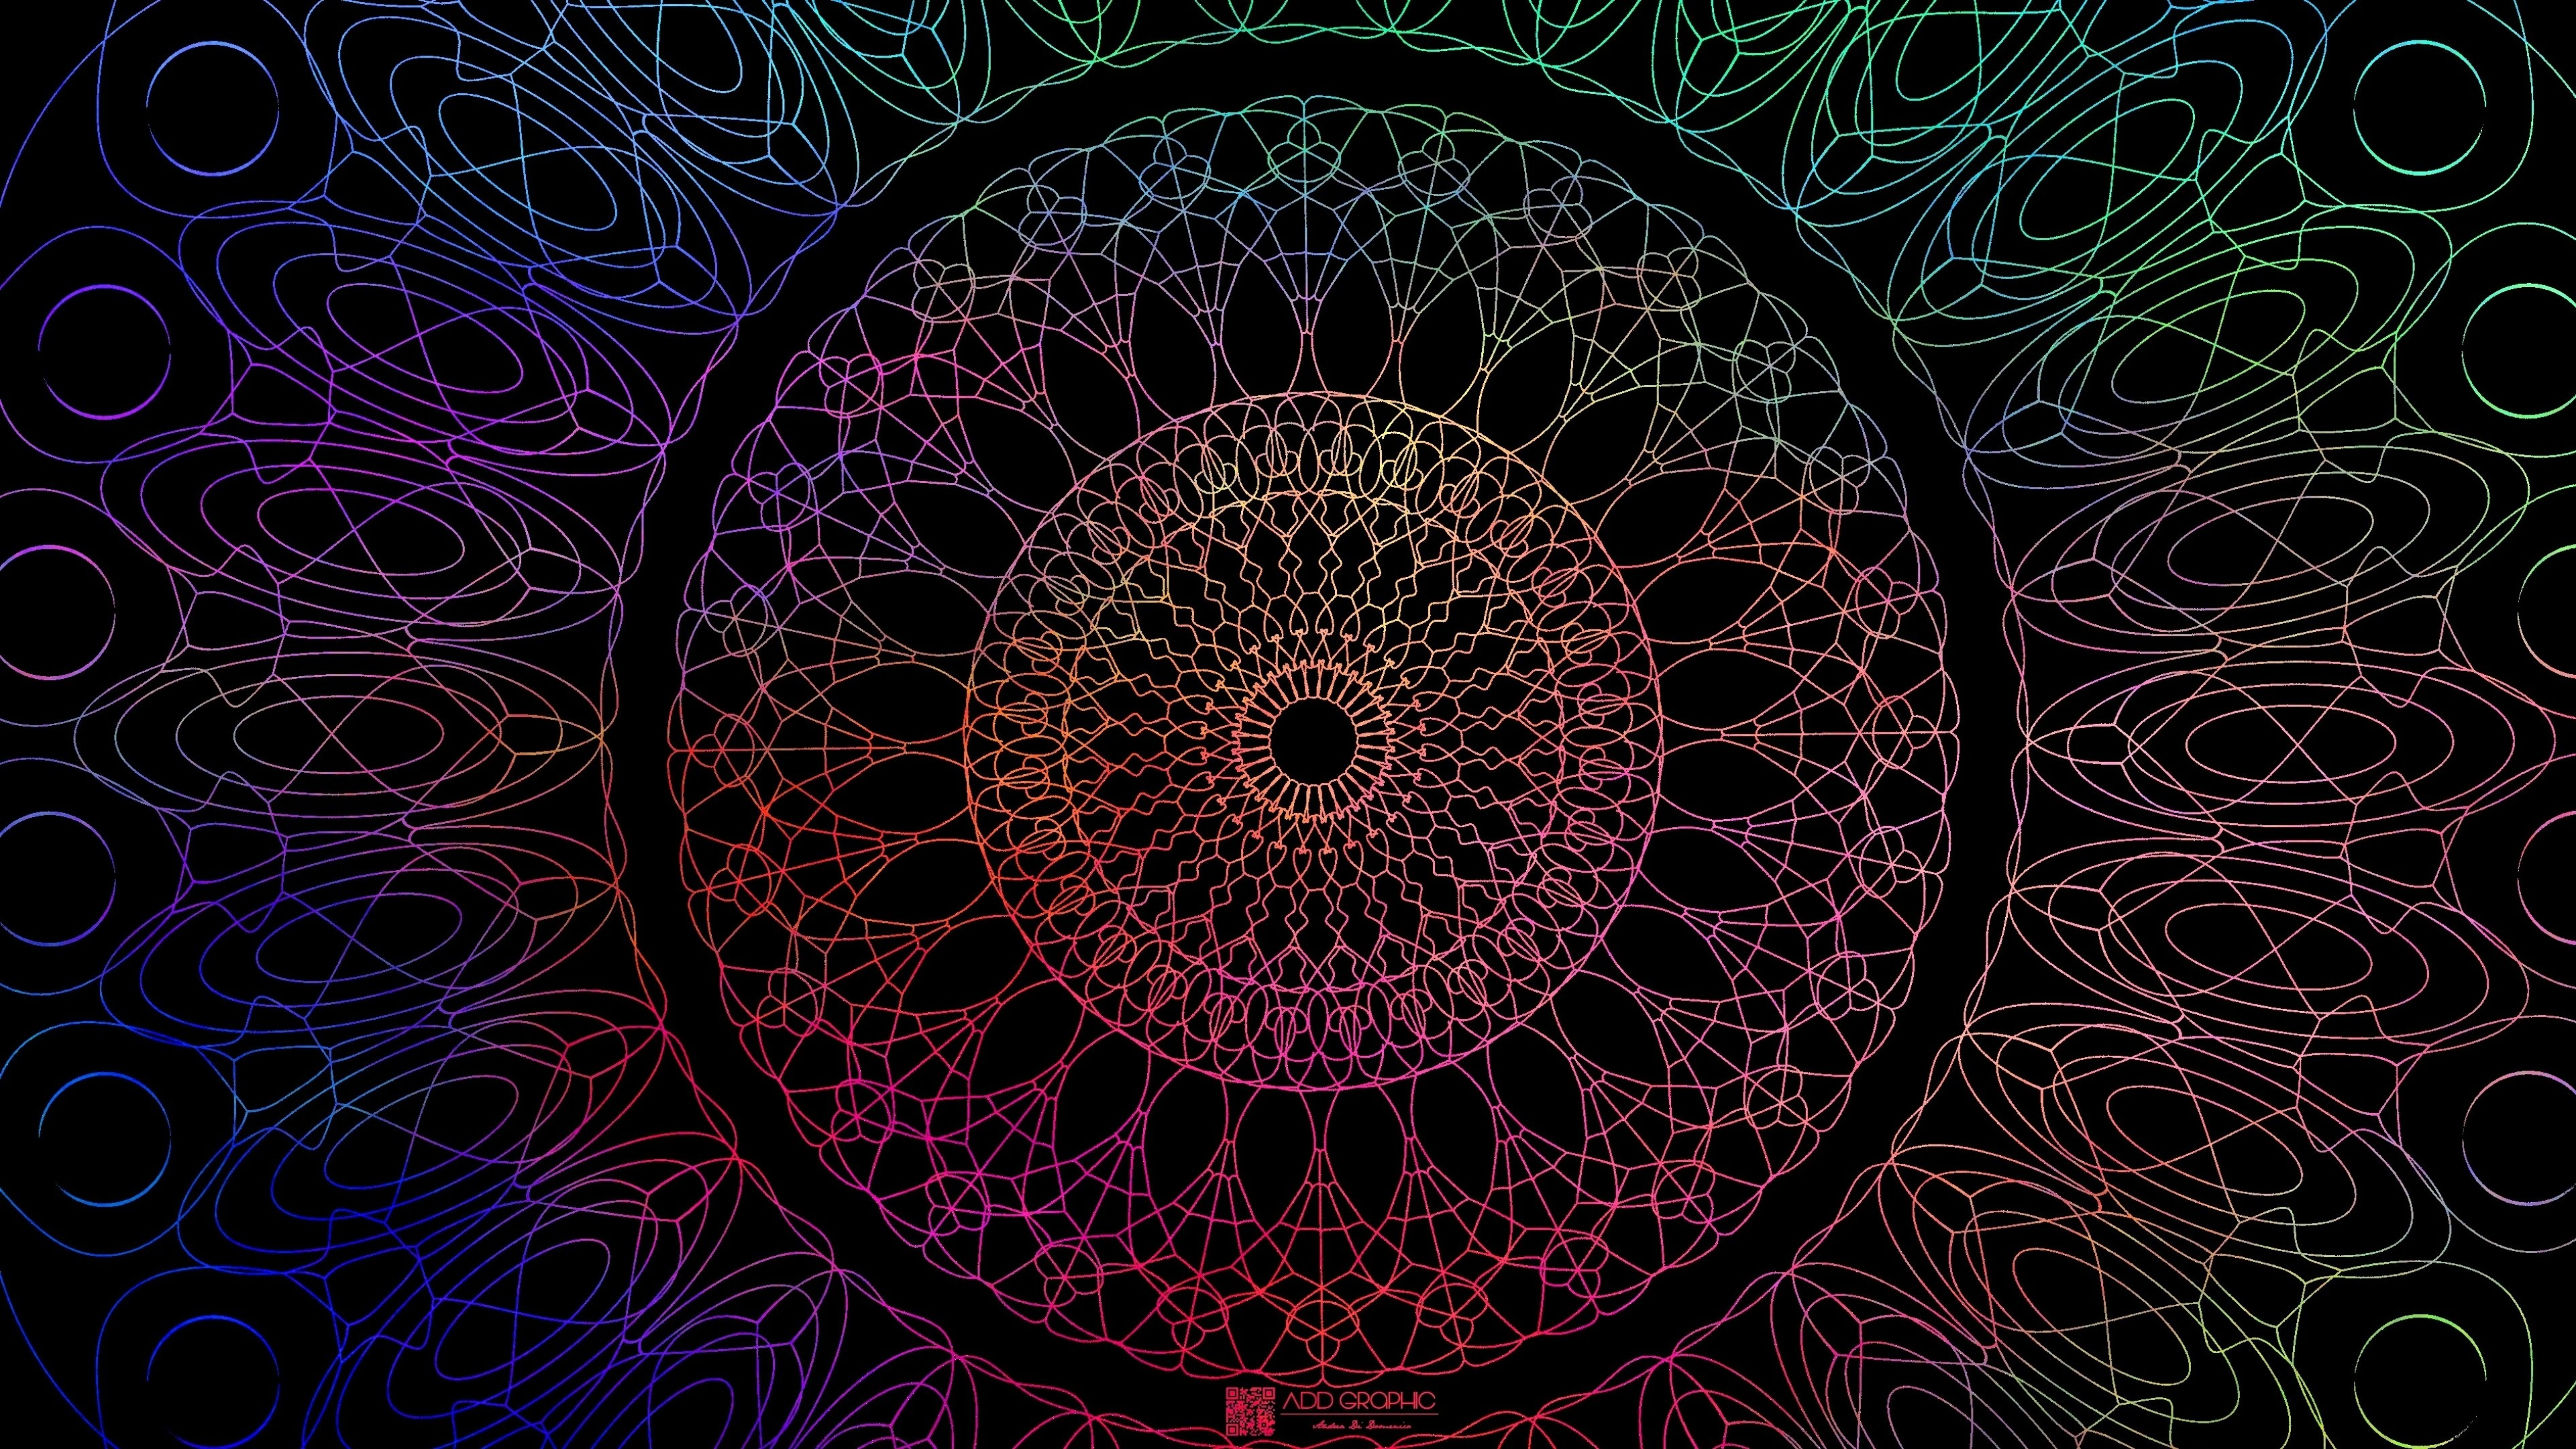 Res: 3840x2160, Mandala 1 Wallpaper